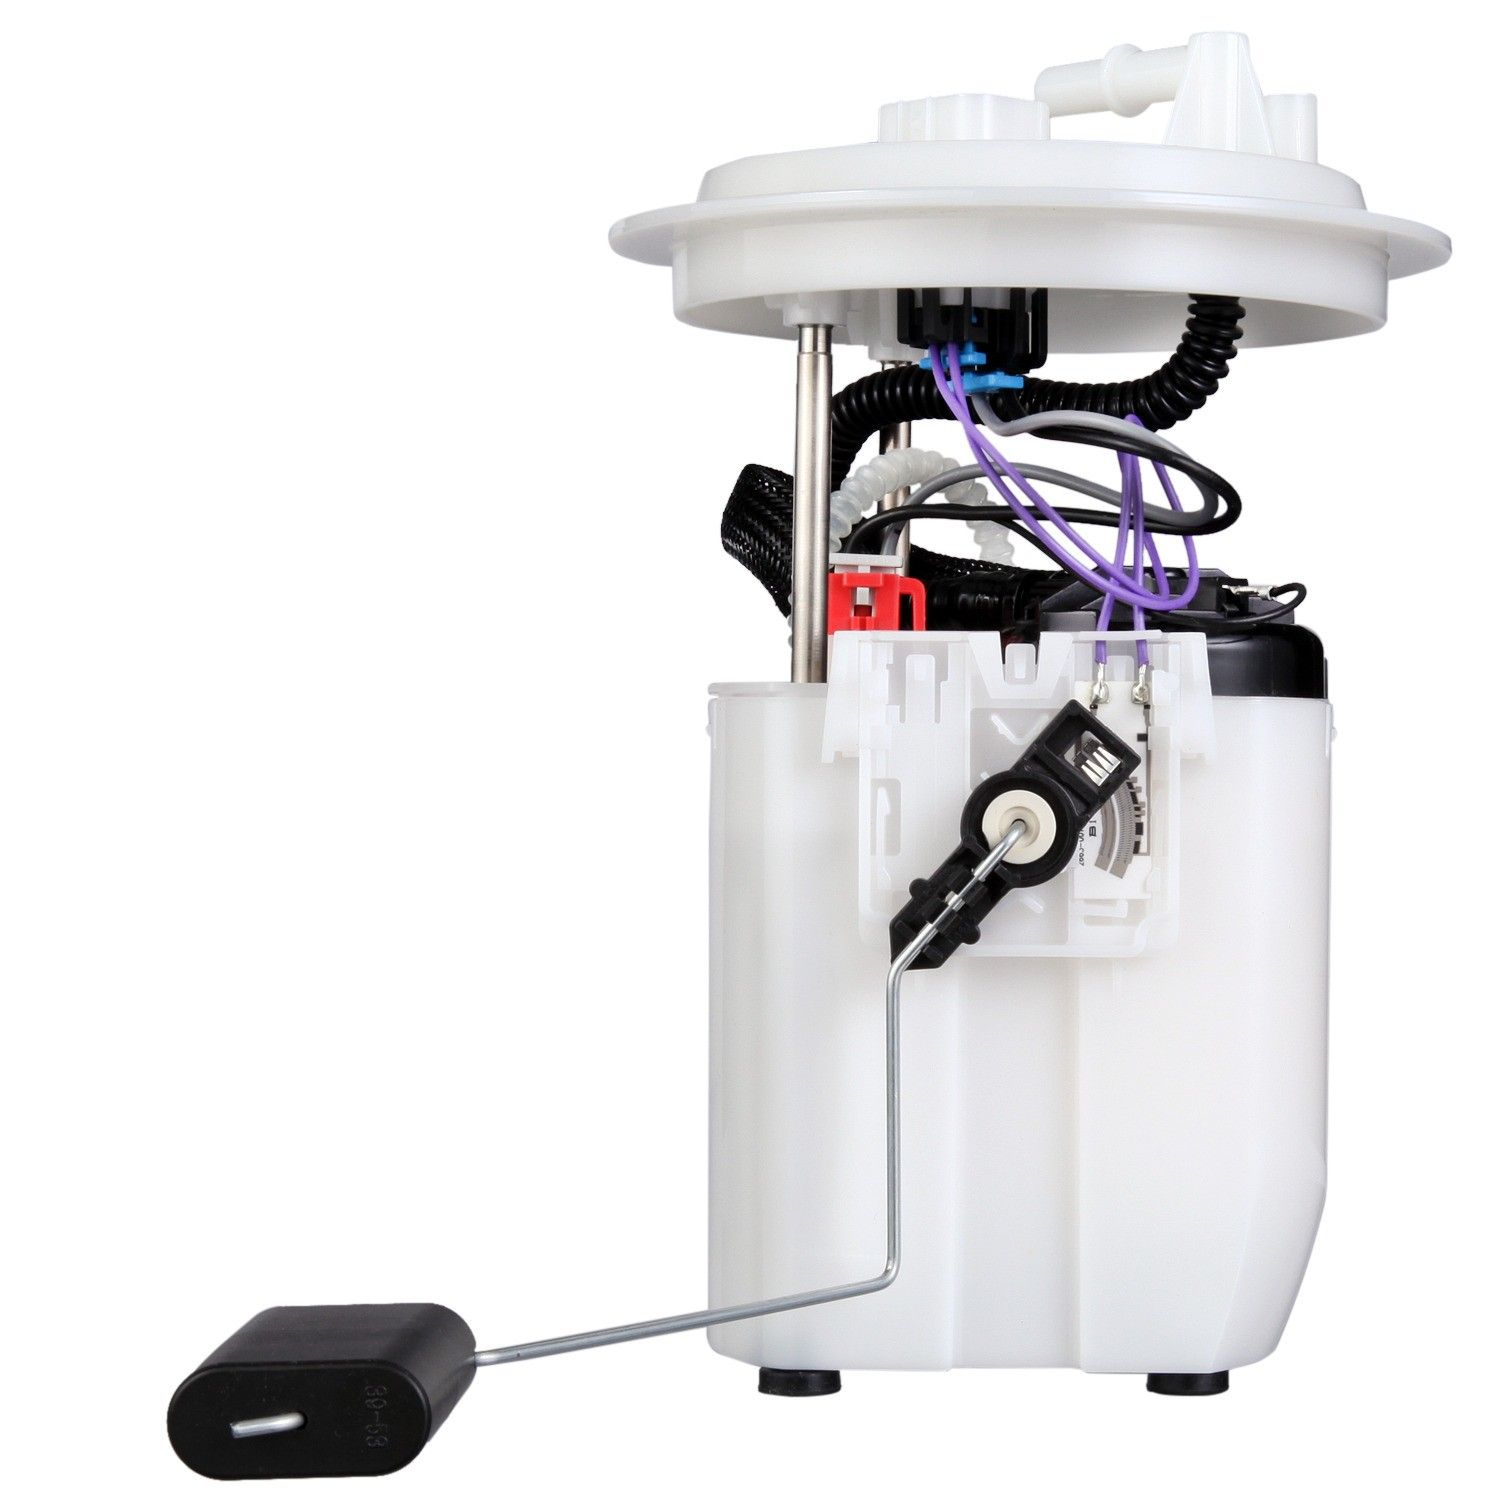 Ford Fusion Fuel Pump Module Assembly Replacement Airtex Autobest 2009 Filter 2006 6 Cyl 30l Delphi Fg1143 Strainer Is Inside The Once New Has Been Installed And